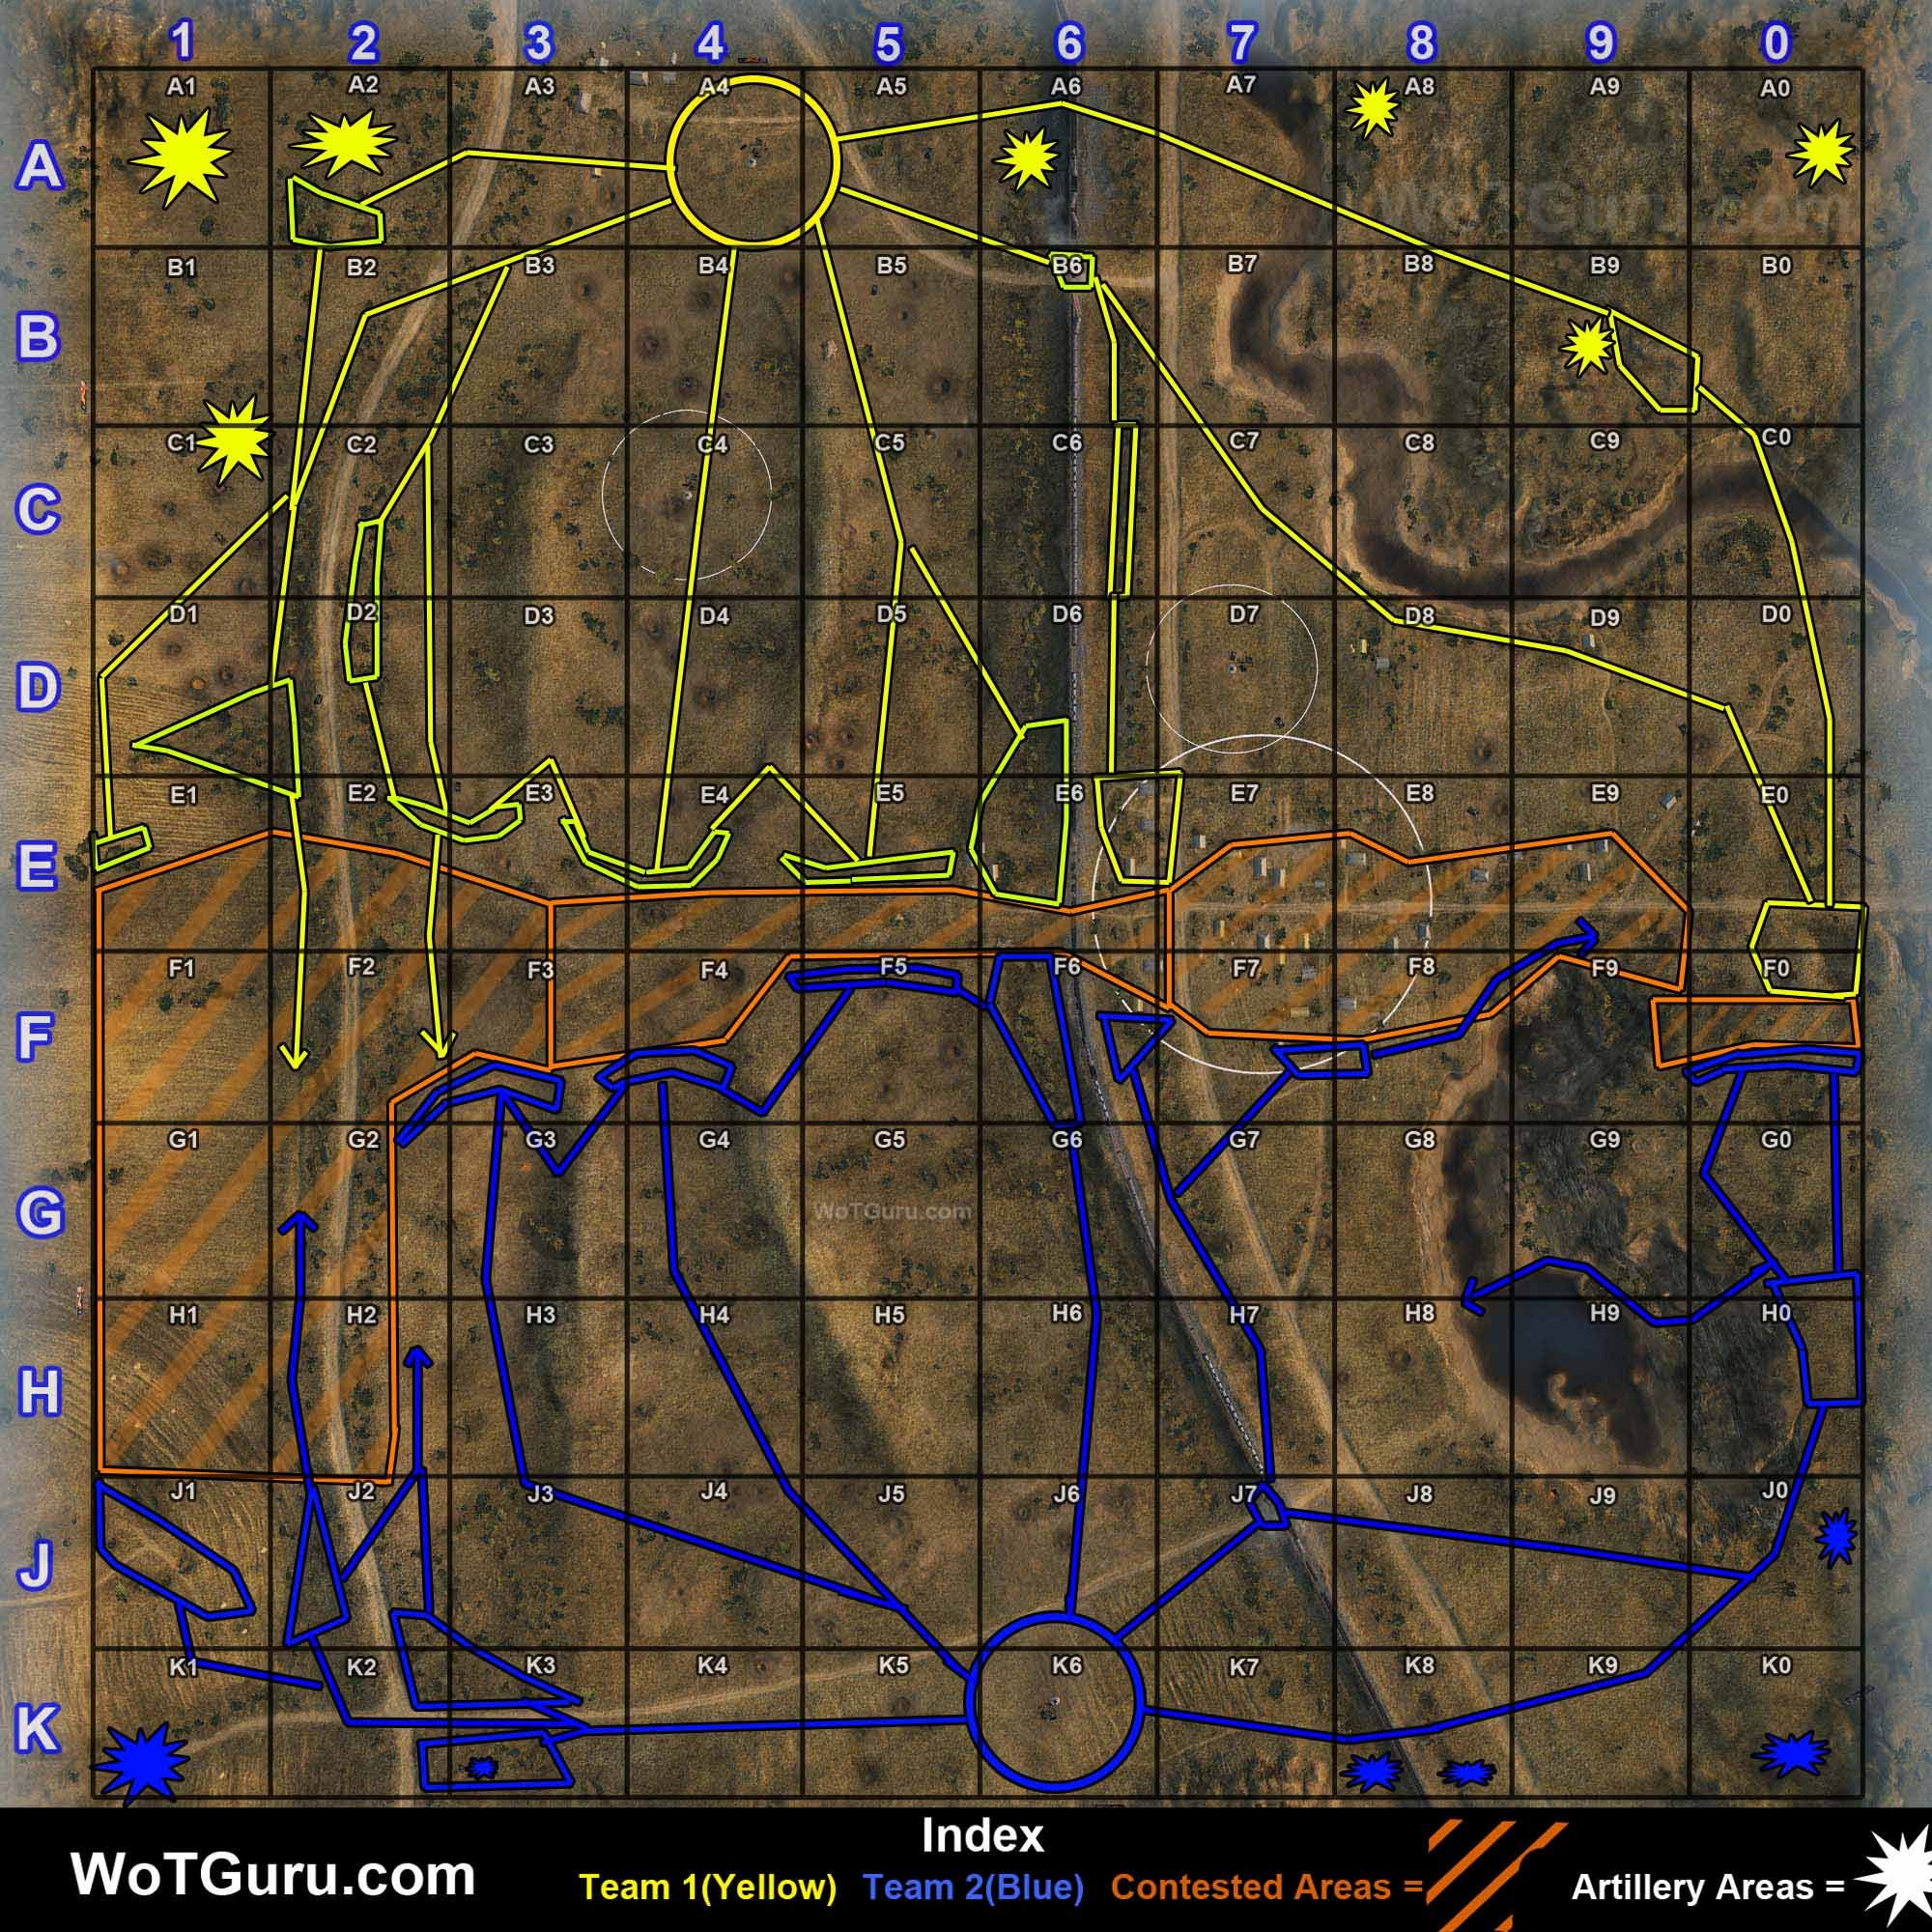 Mapstrategyfierysalient wot pinterest key this world of tanks fiery salient strategy guide provides key routes positions and tactics to use to excel on fiery salient in random wot battles gumiabroncs Choice Image